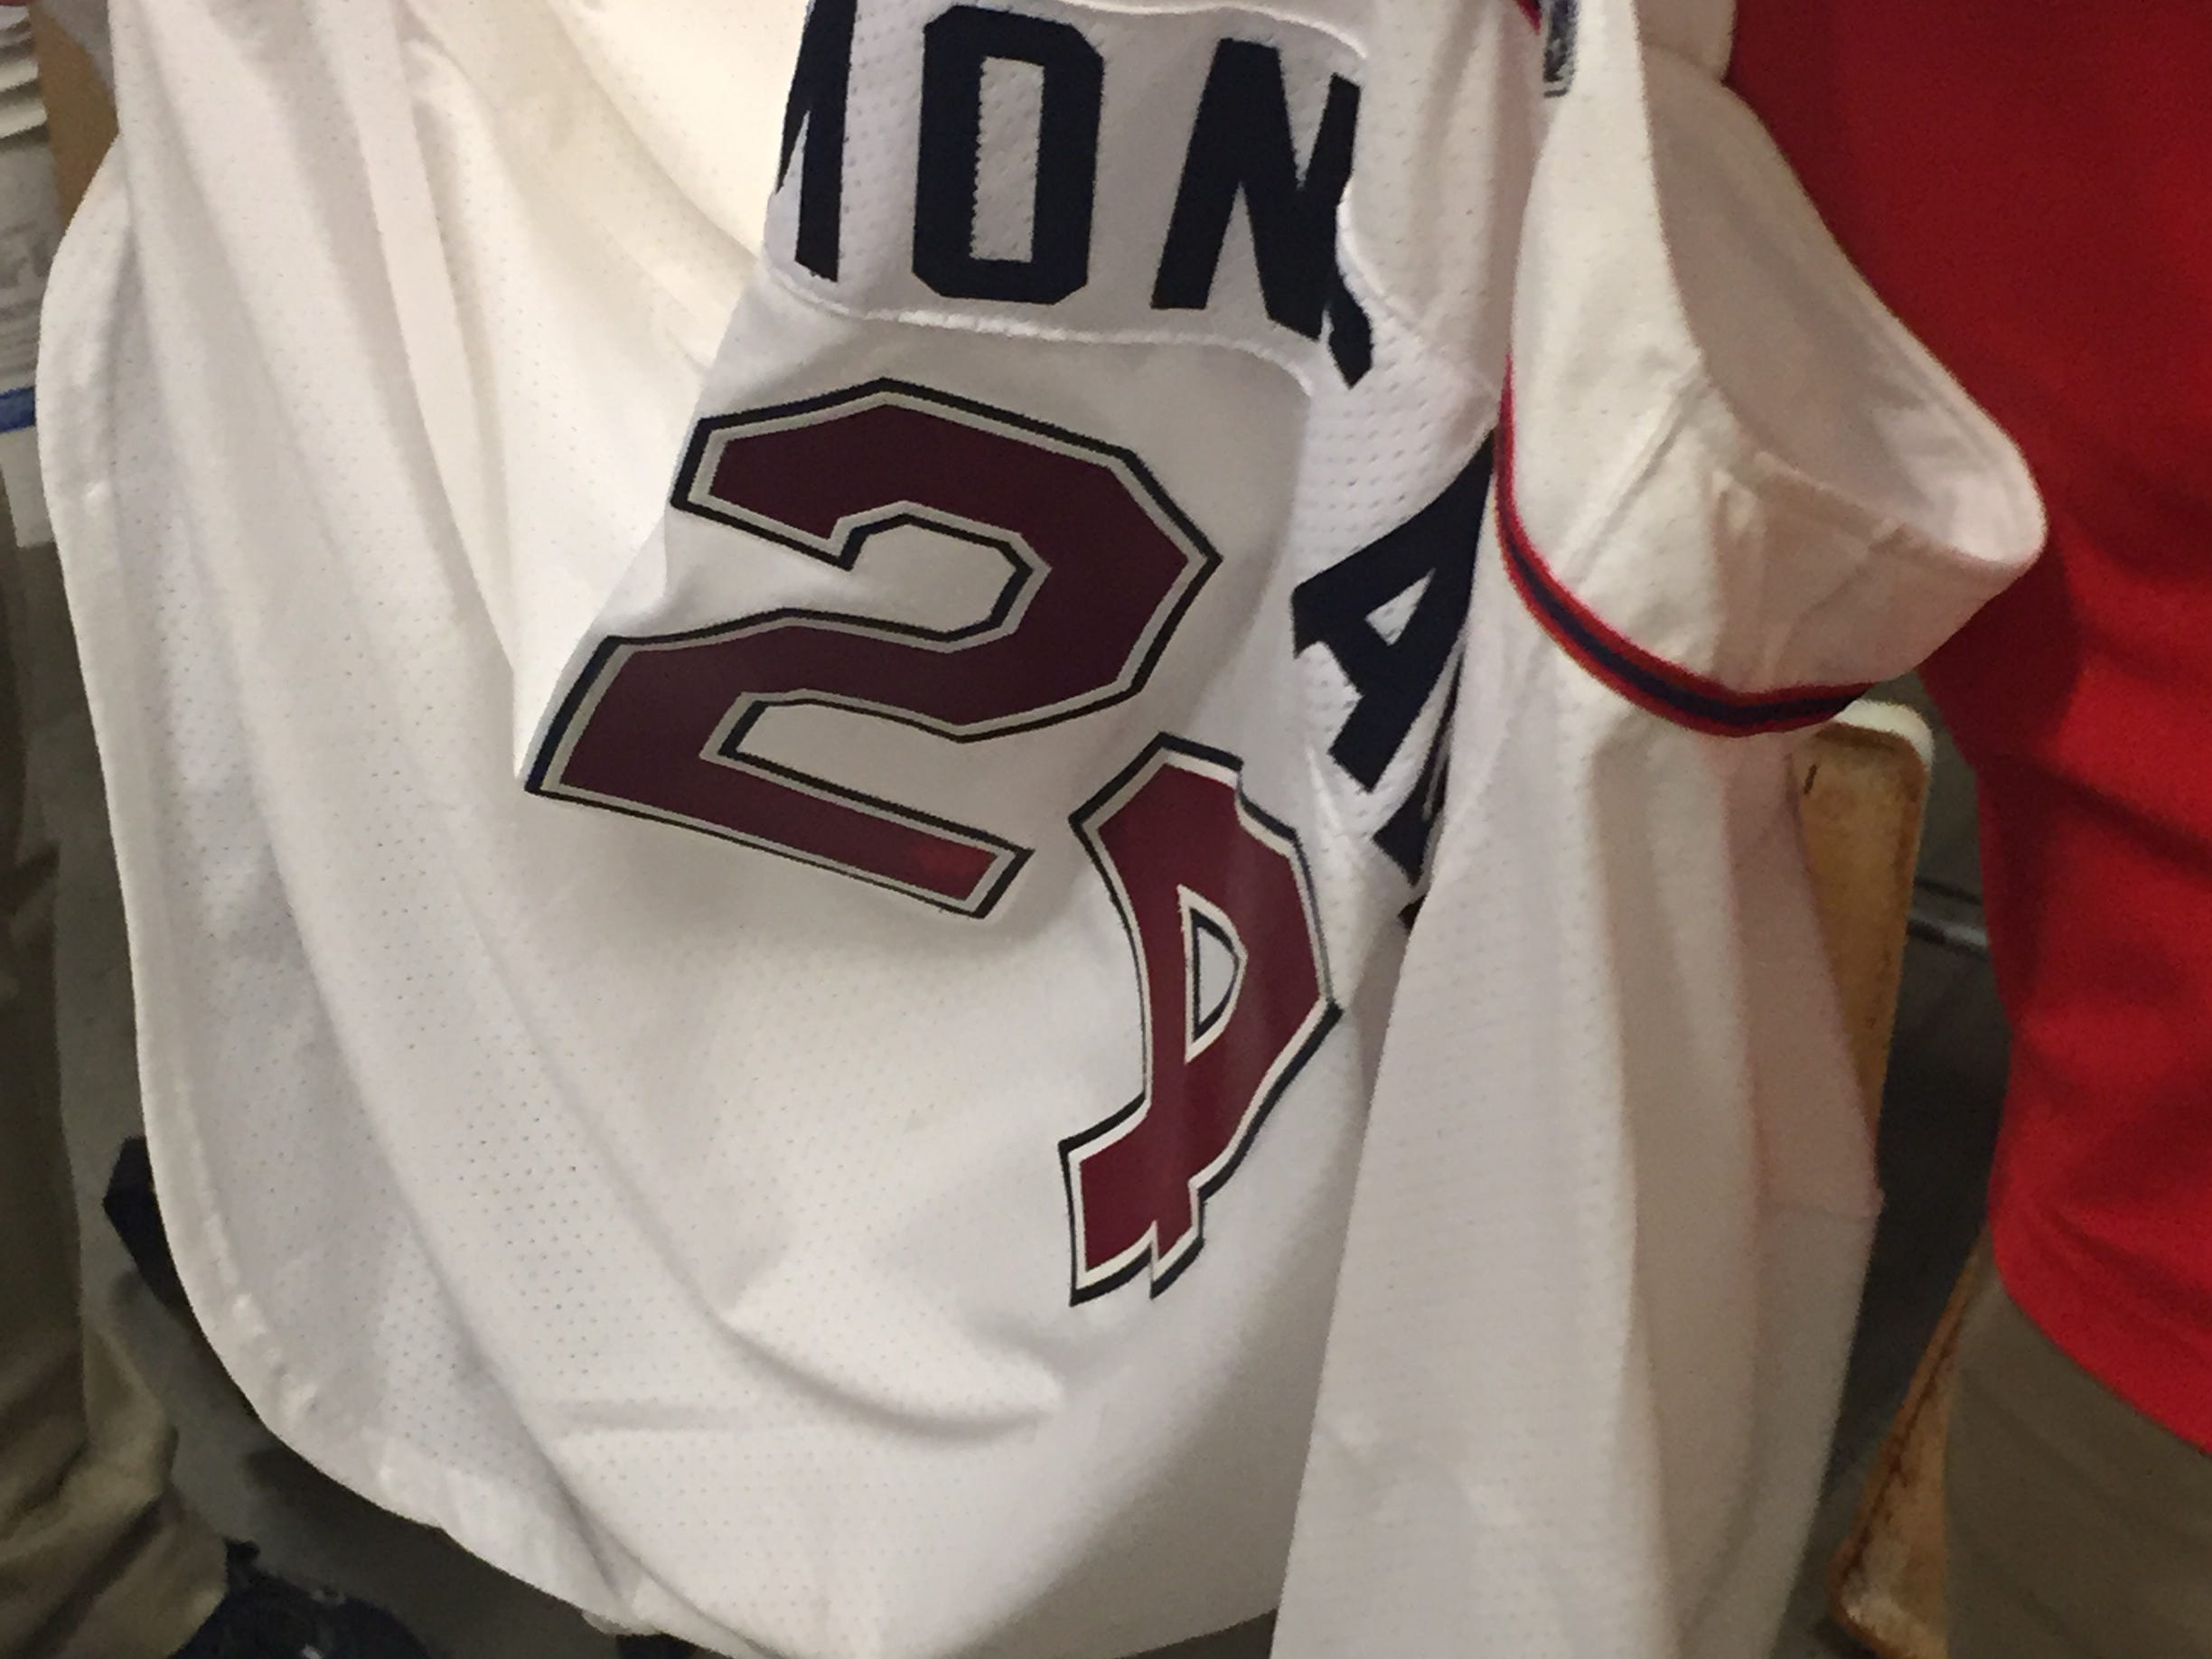 A MLB authenticator inspects the jersey Yoan Moncada wore for his first game with the Greenville Drive on May 18, 2015.